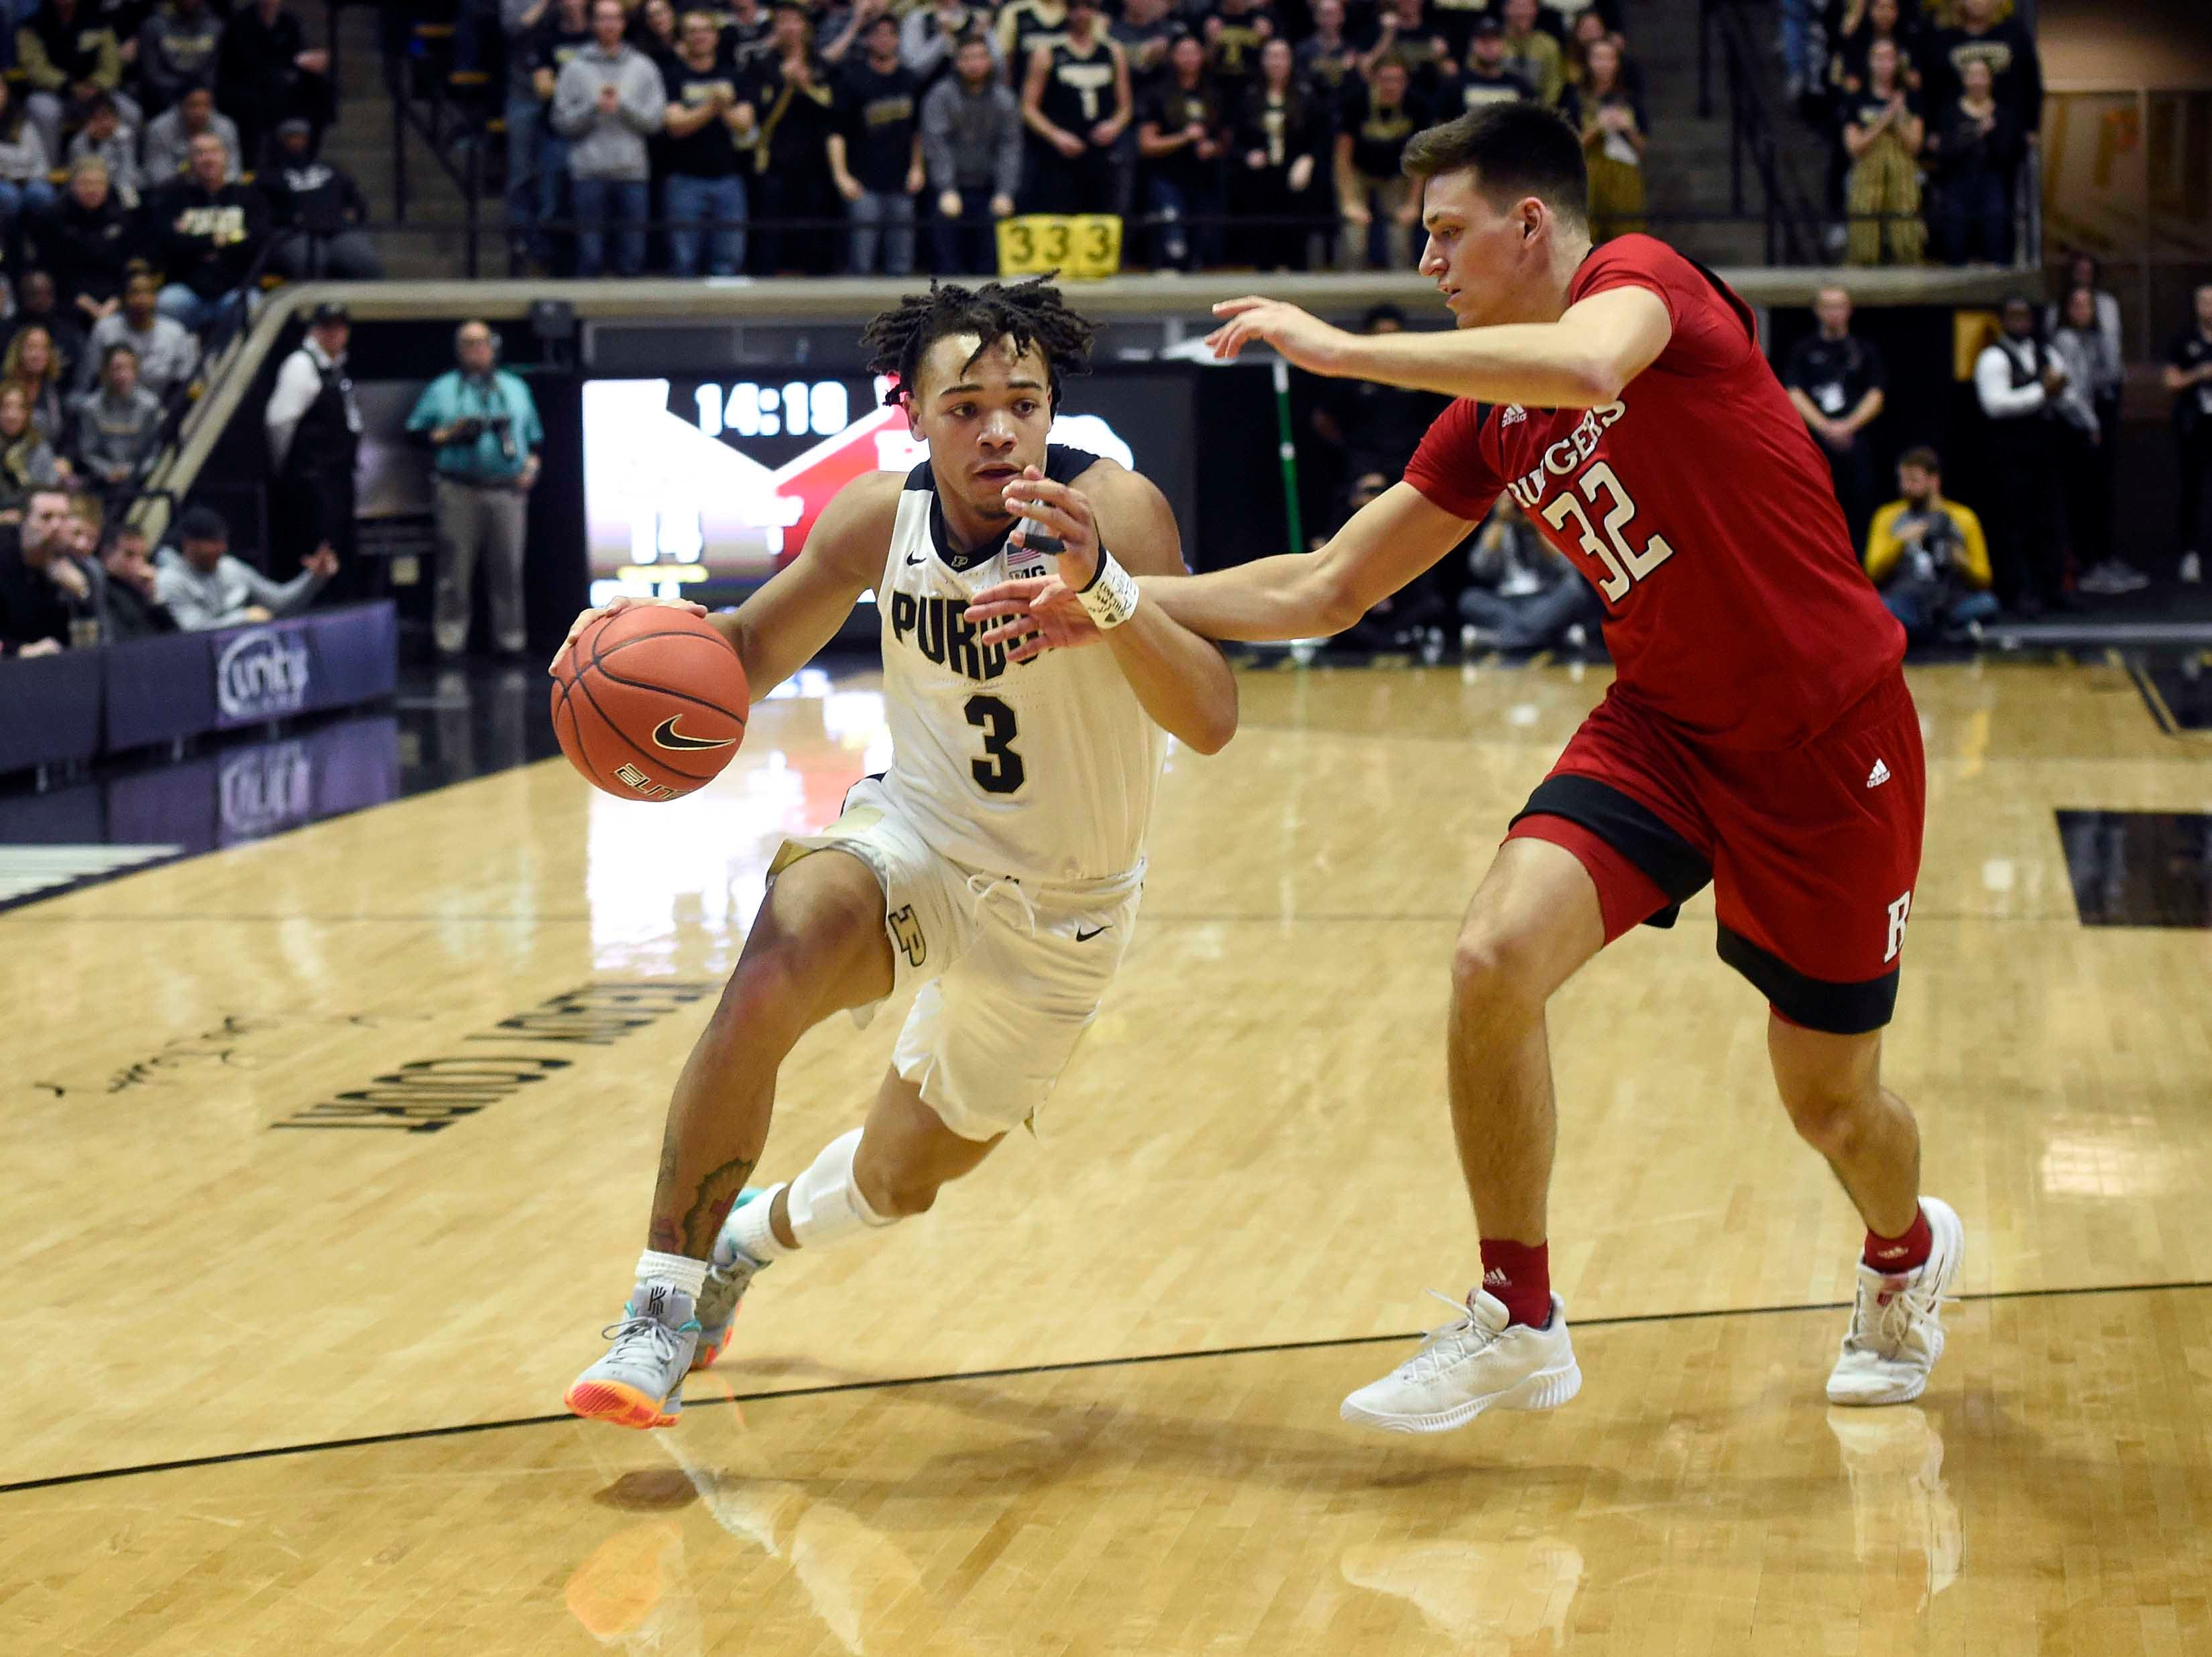 Jan 15, 2019; West Lafayette, IN, USA; Purdue Boilermakers guard Carsen Edwards (3) dries on Rutgers Scarlet Knights guard Peter Kiss (32) in the first half at Mackey Arena. Mandatory Credit: Sandra Dukes-USA TODAY Sports